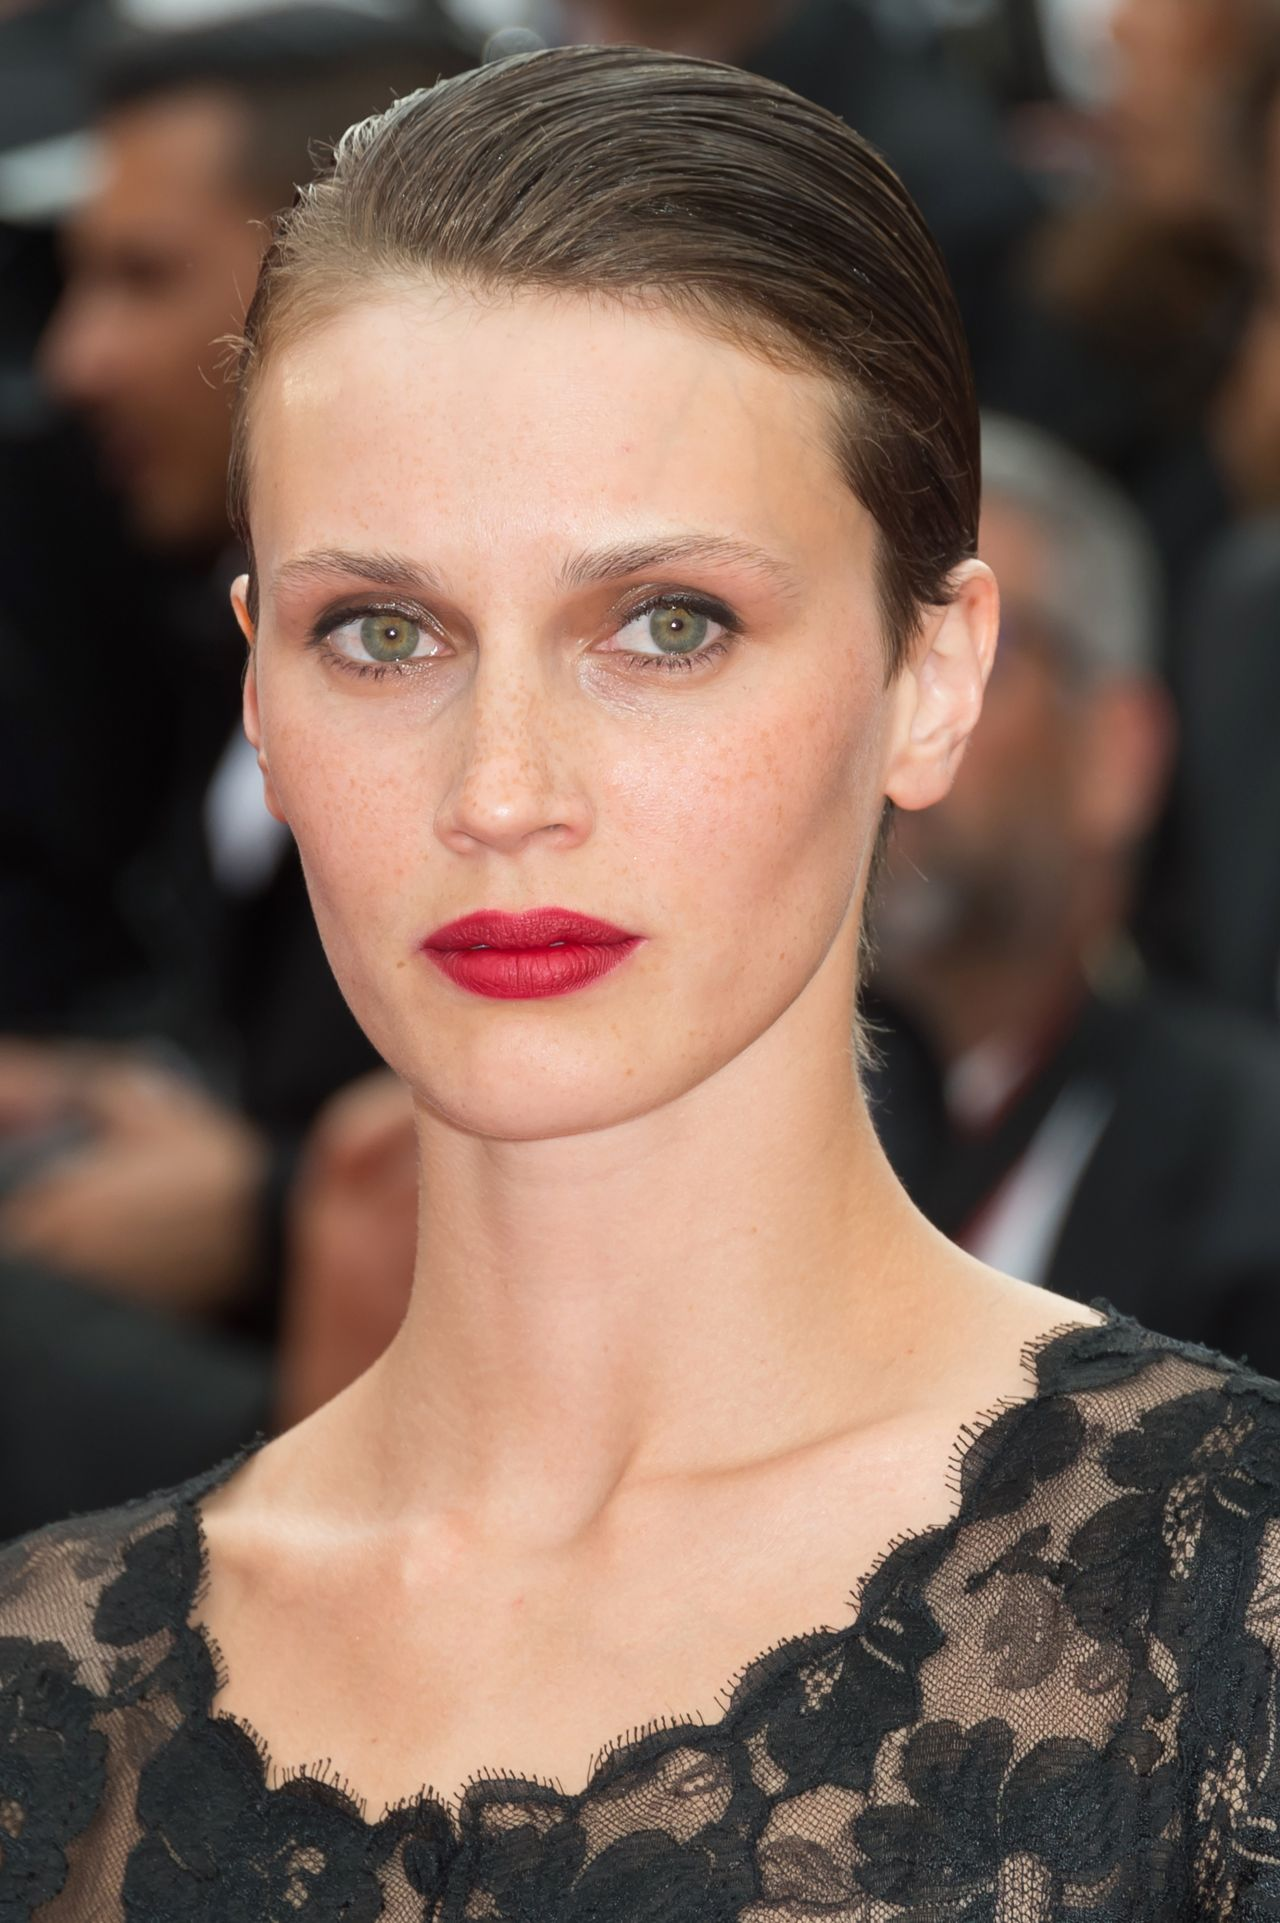 Marine Vacth - The Double Lover Premiere in Cannes 05/26